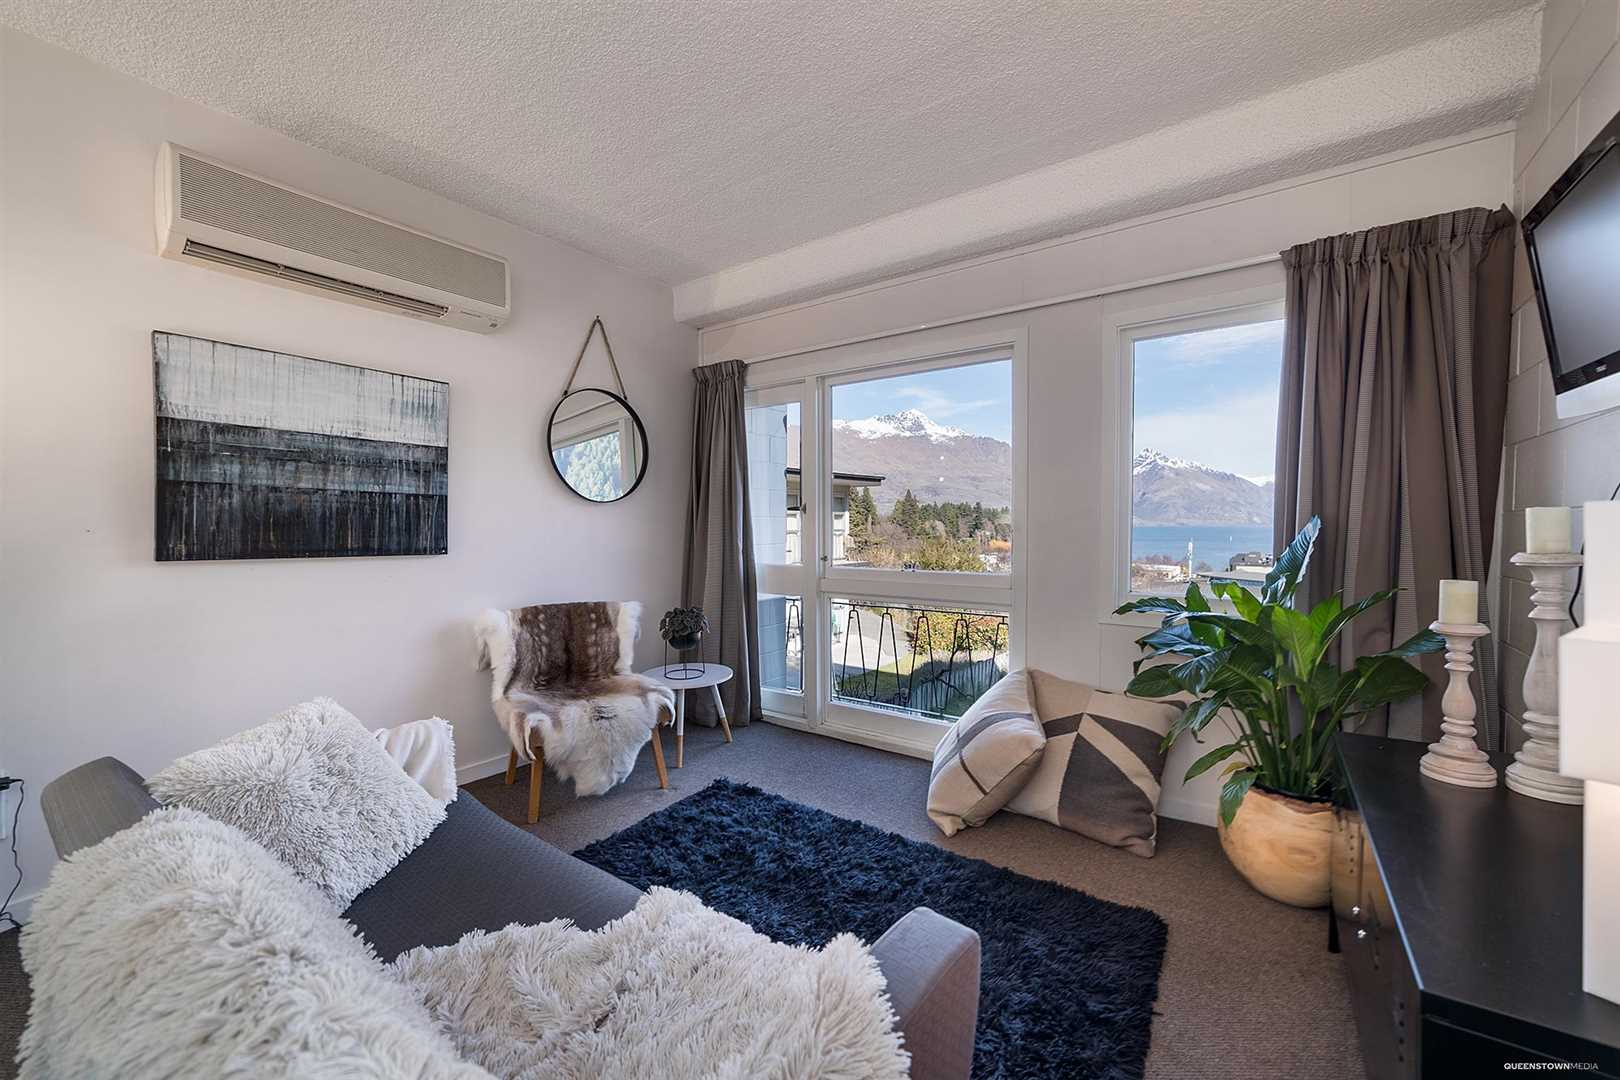 Cute,Tidy Apartment in The Heart of Queenstown.